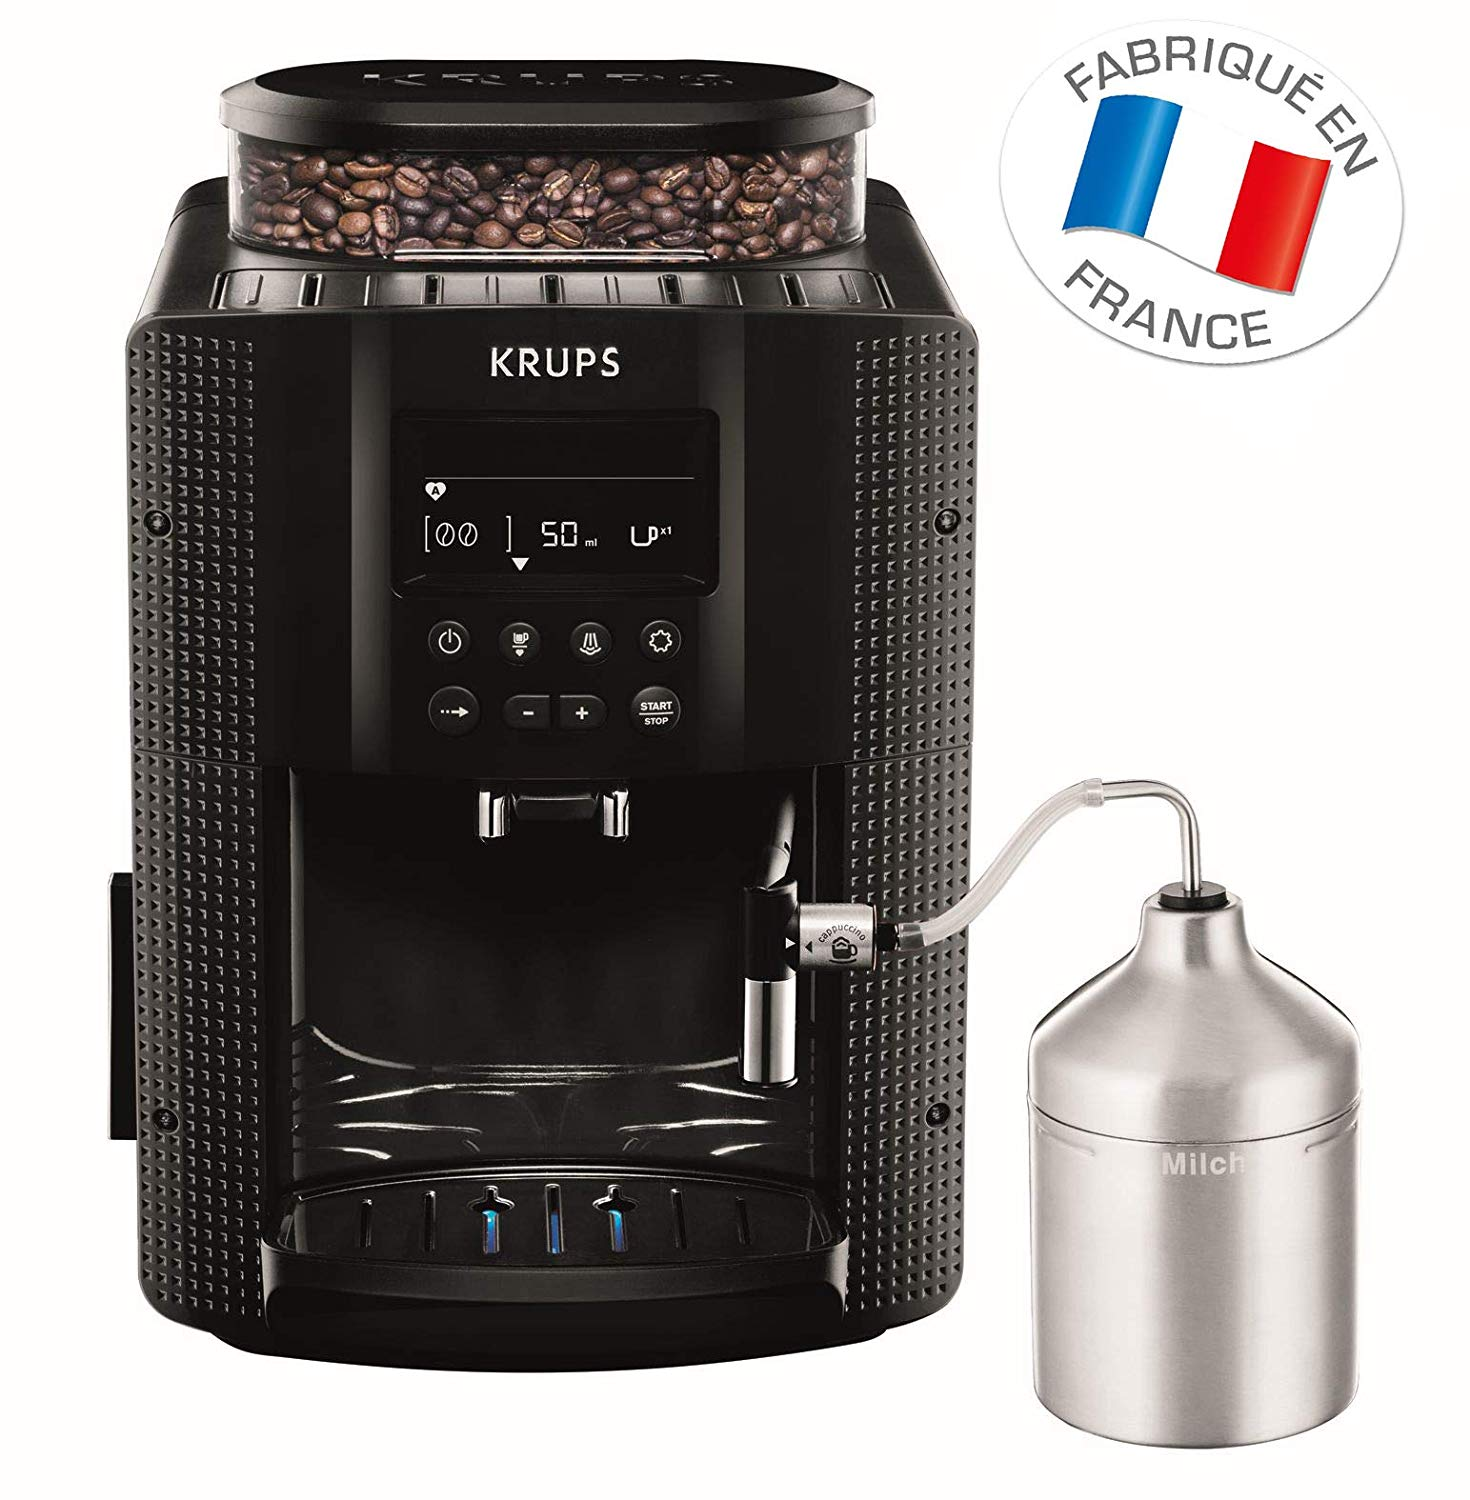 Machine à café automatique avec broyer à grains Krups Expresso EA816031